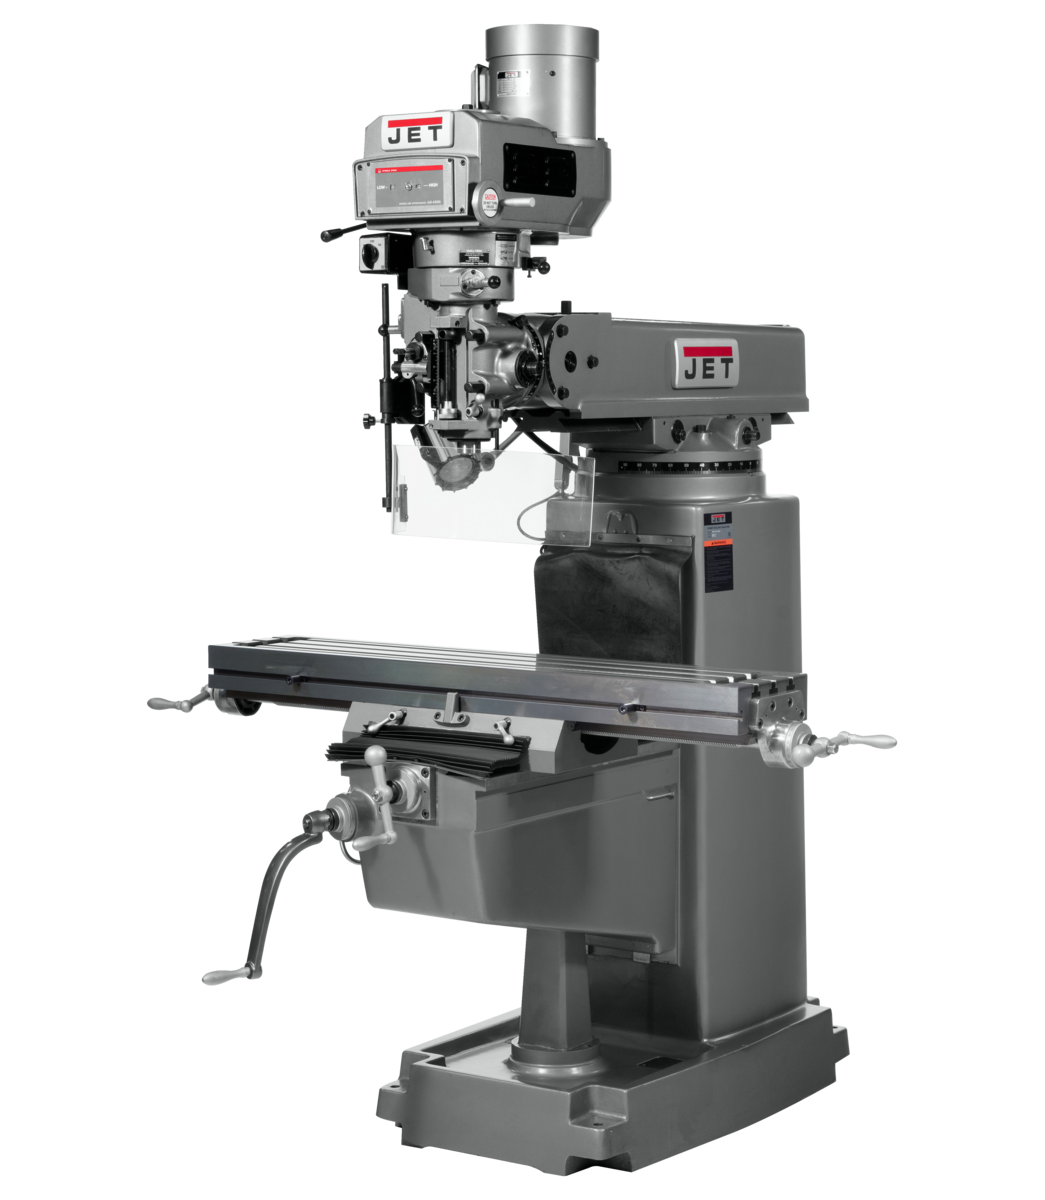 JTM-1050VS2 Mill With 3-Axis ACU-RITE 203 DRO (Quill) With  X and Y-Axis Powerfeeds